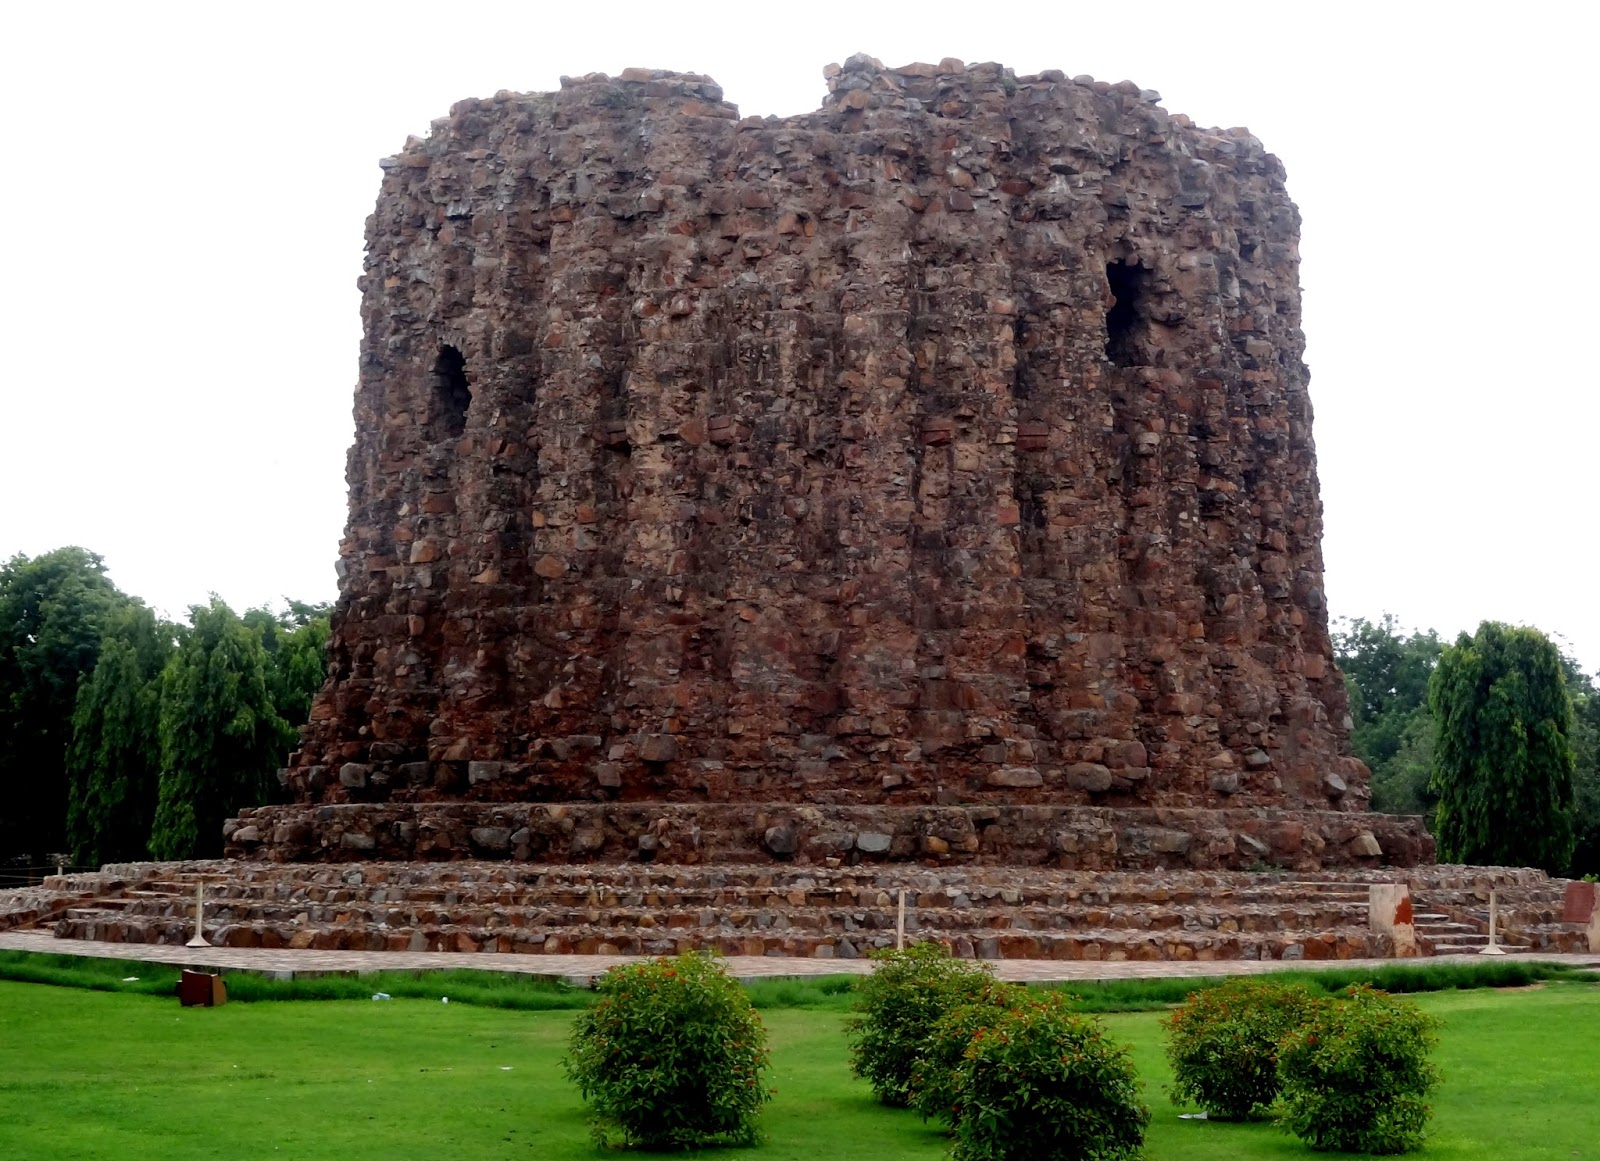 qutub complex Find the perfect qutub complex stock photo huge collection, amazing choice,  100+ million high quality, affordable rf and rm images no need to register, buy .